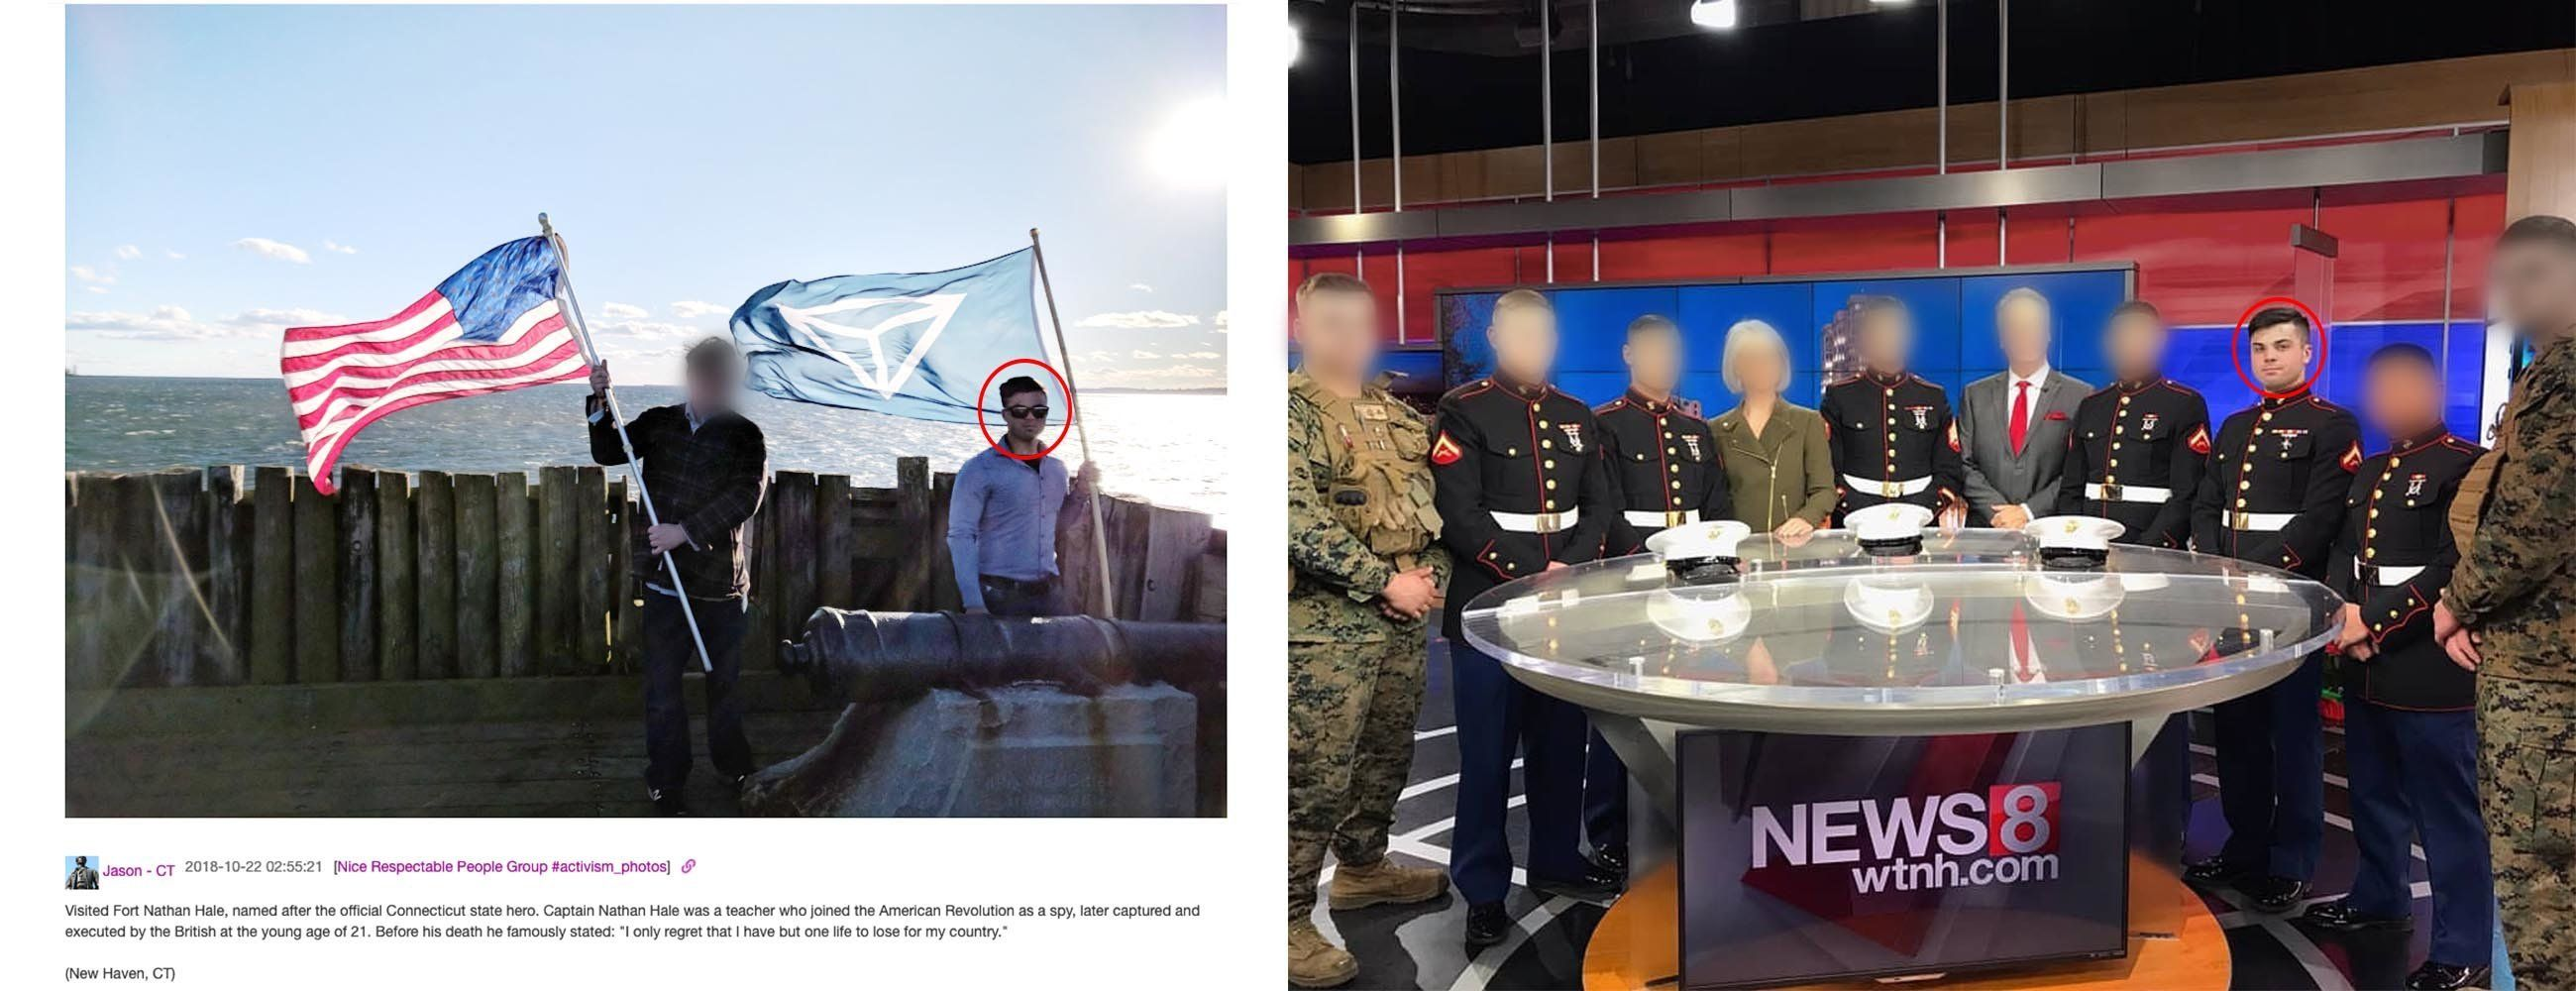 Jason Laguardia posted on the Discord server an image of himself waving an Identity Evropa flag (left). He visited a New